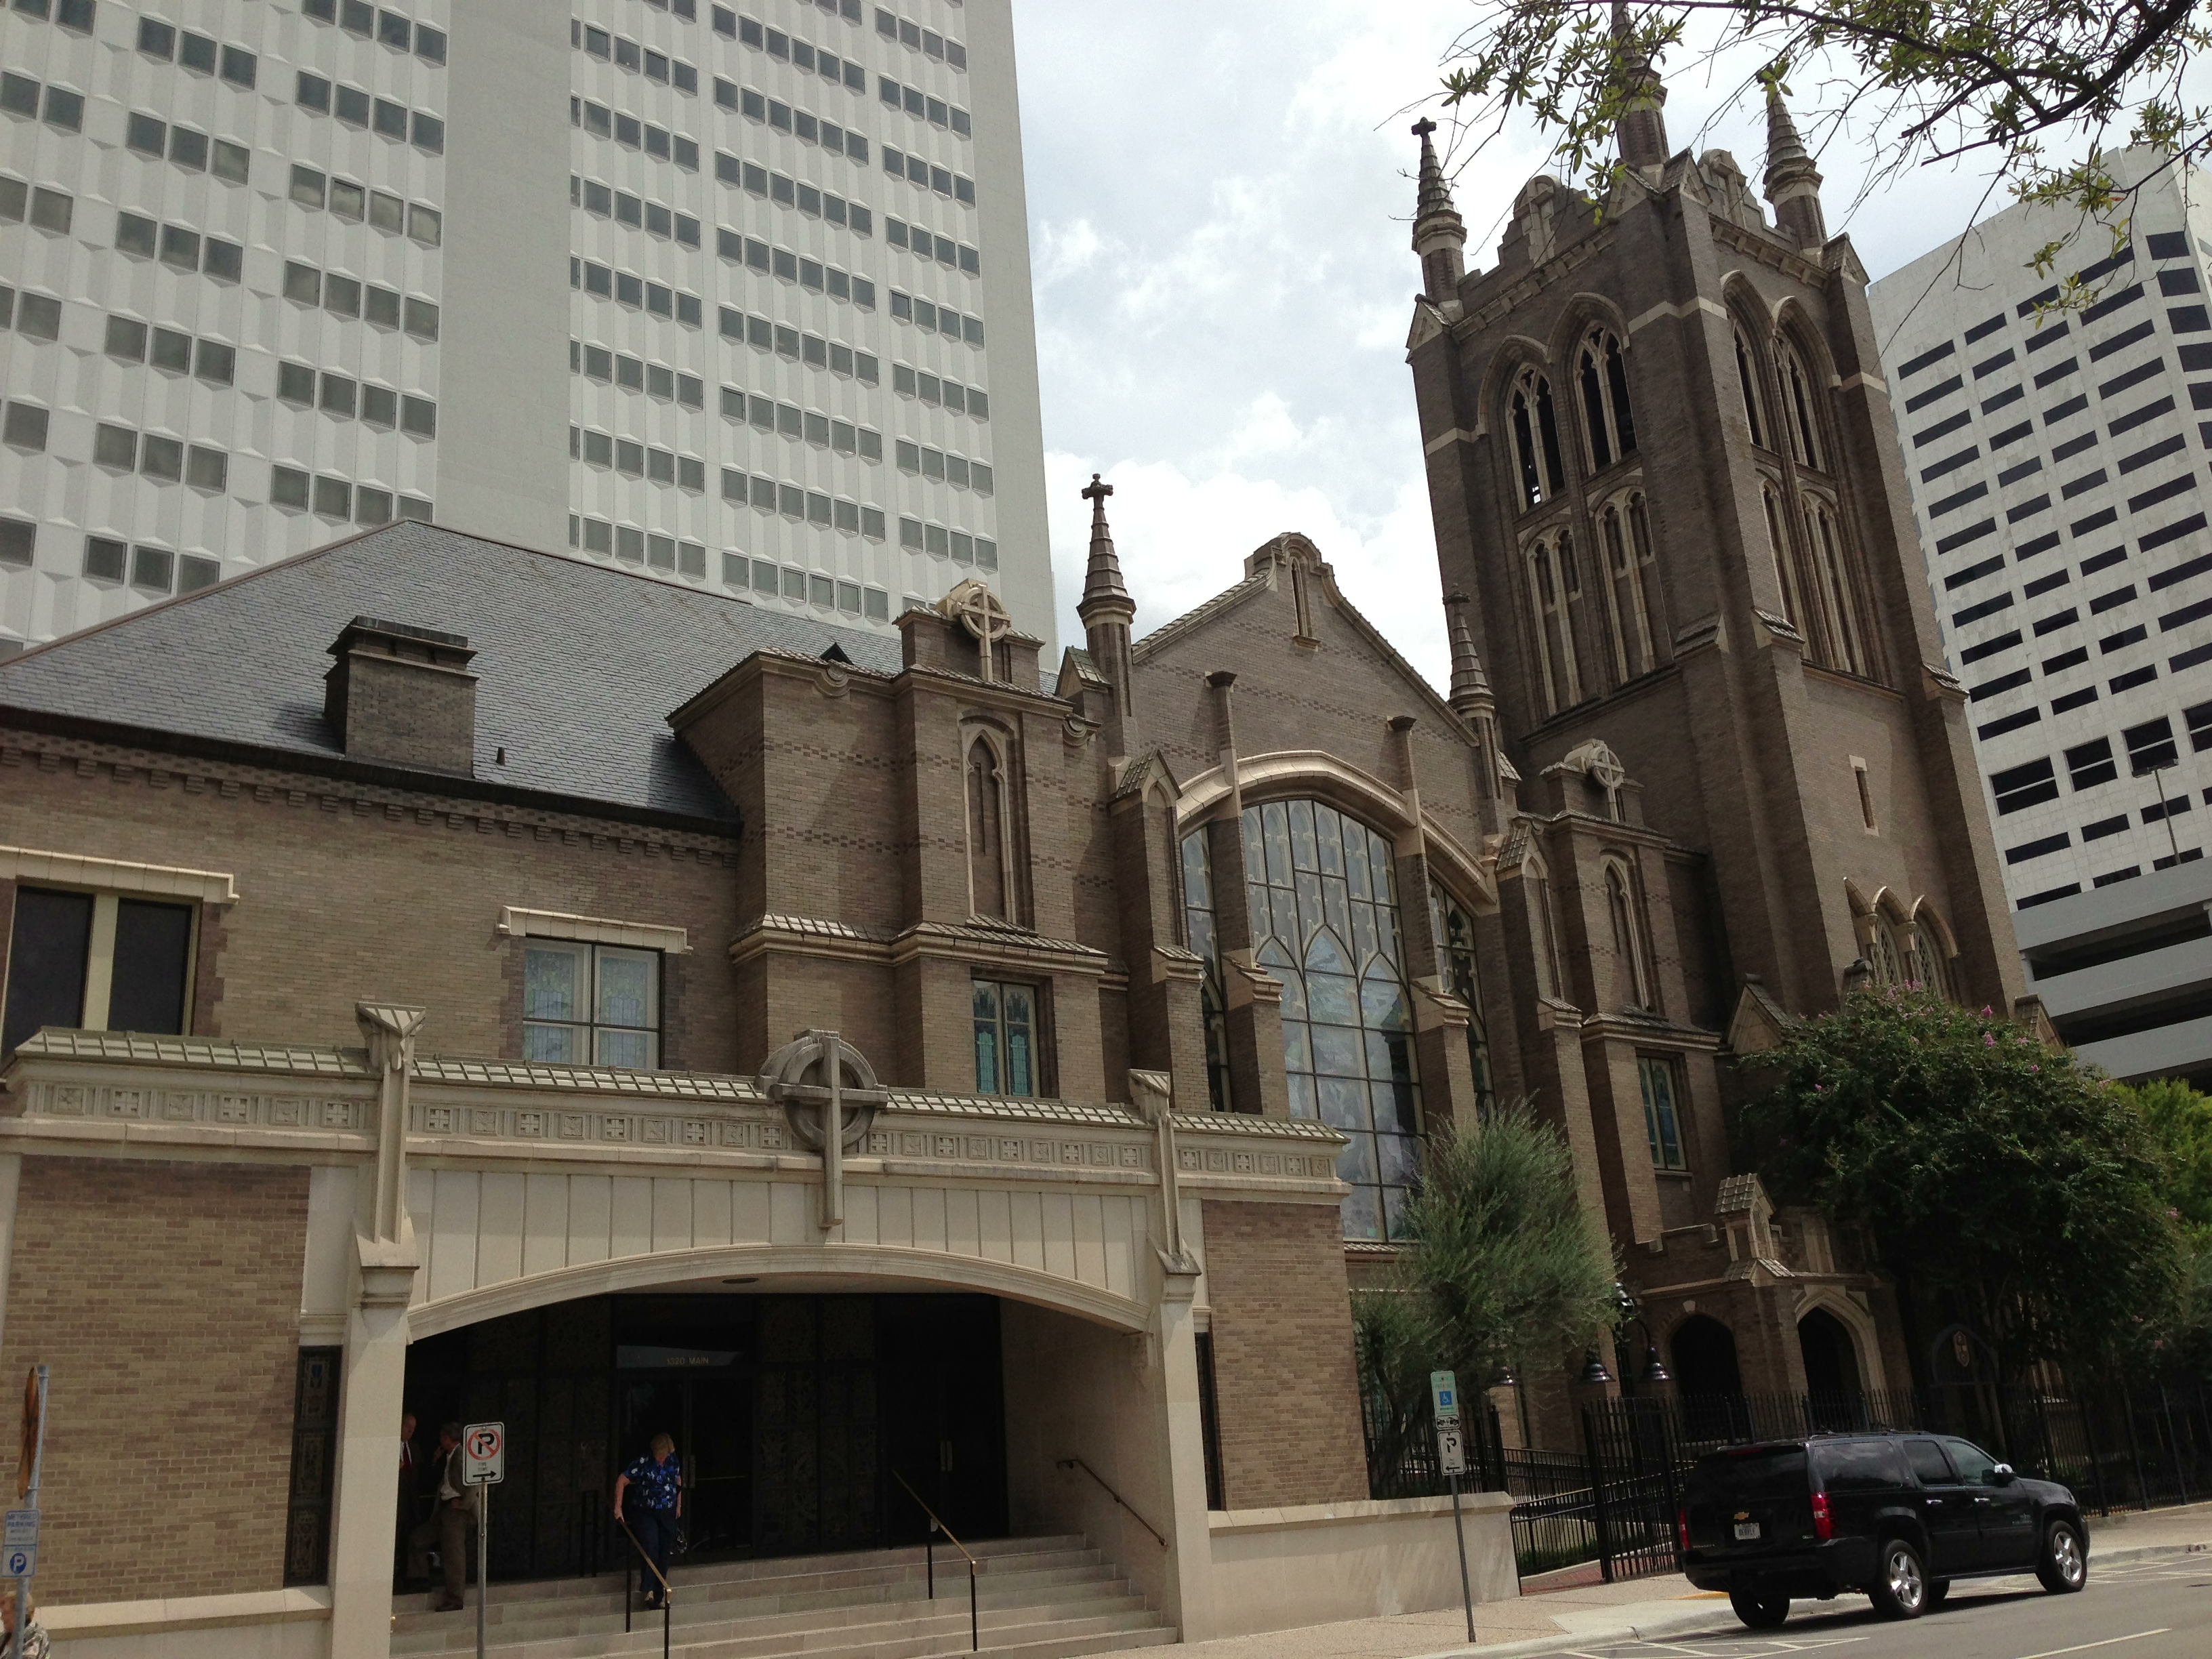 File:First Methodist Houston, Texas, USA - 20130915 jpg - Wikimedia